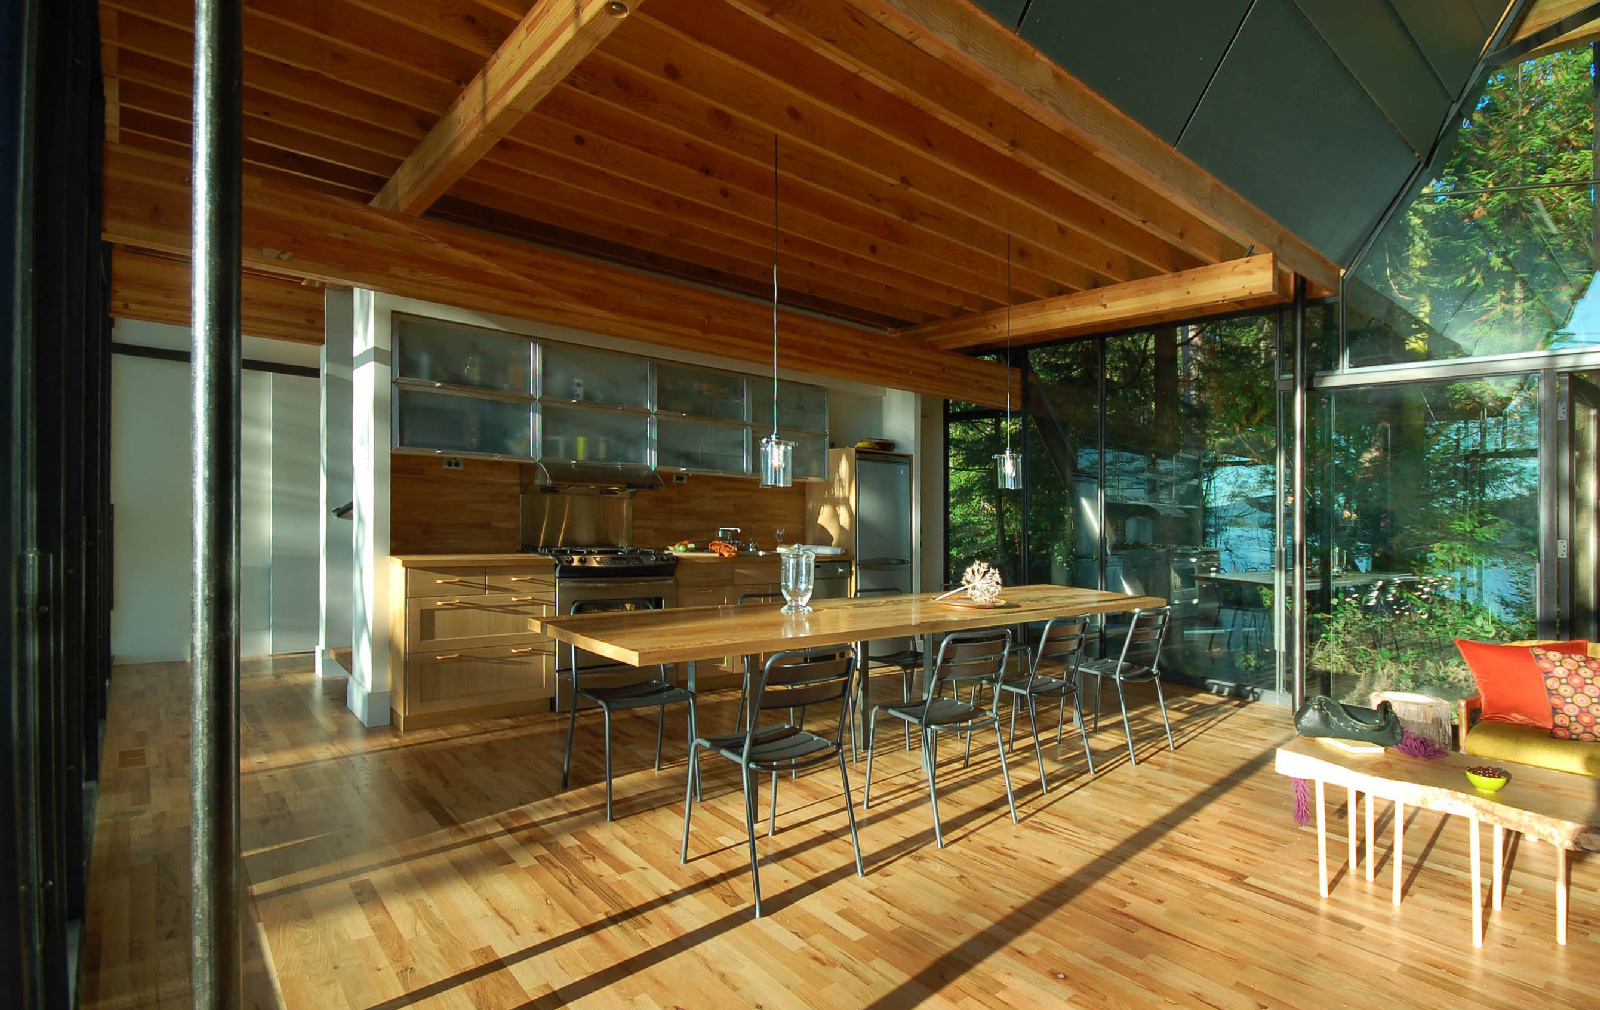 Glass cabin / Sneeoosh cabin holiday home for rent in Washington State